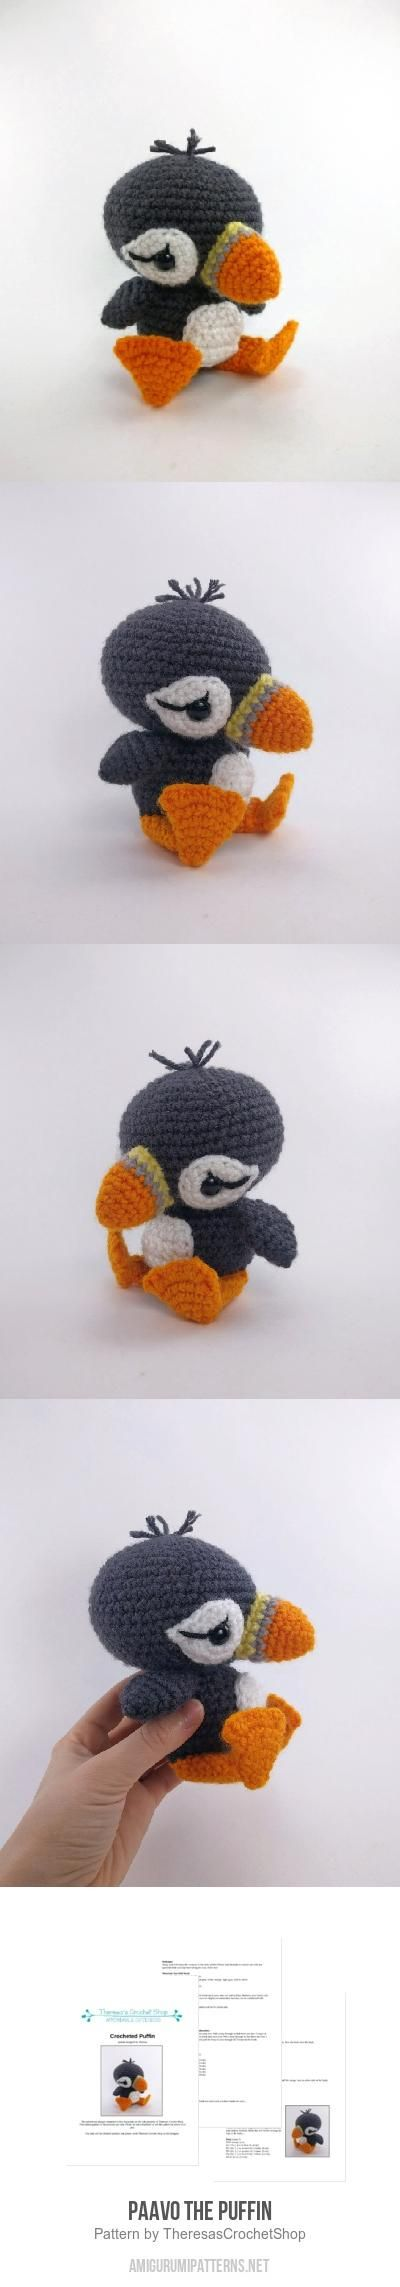 Paavo the Puffin amigurumi pattern